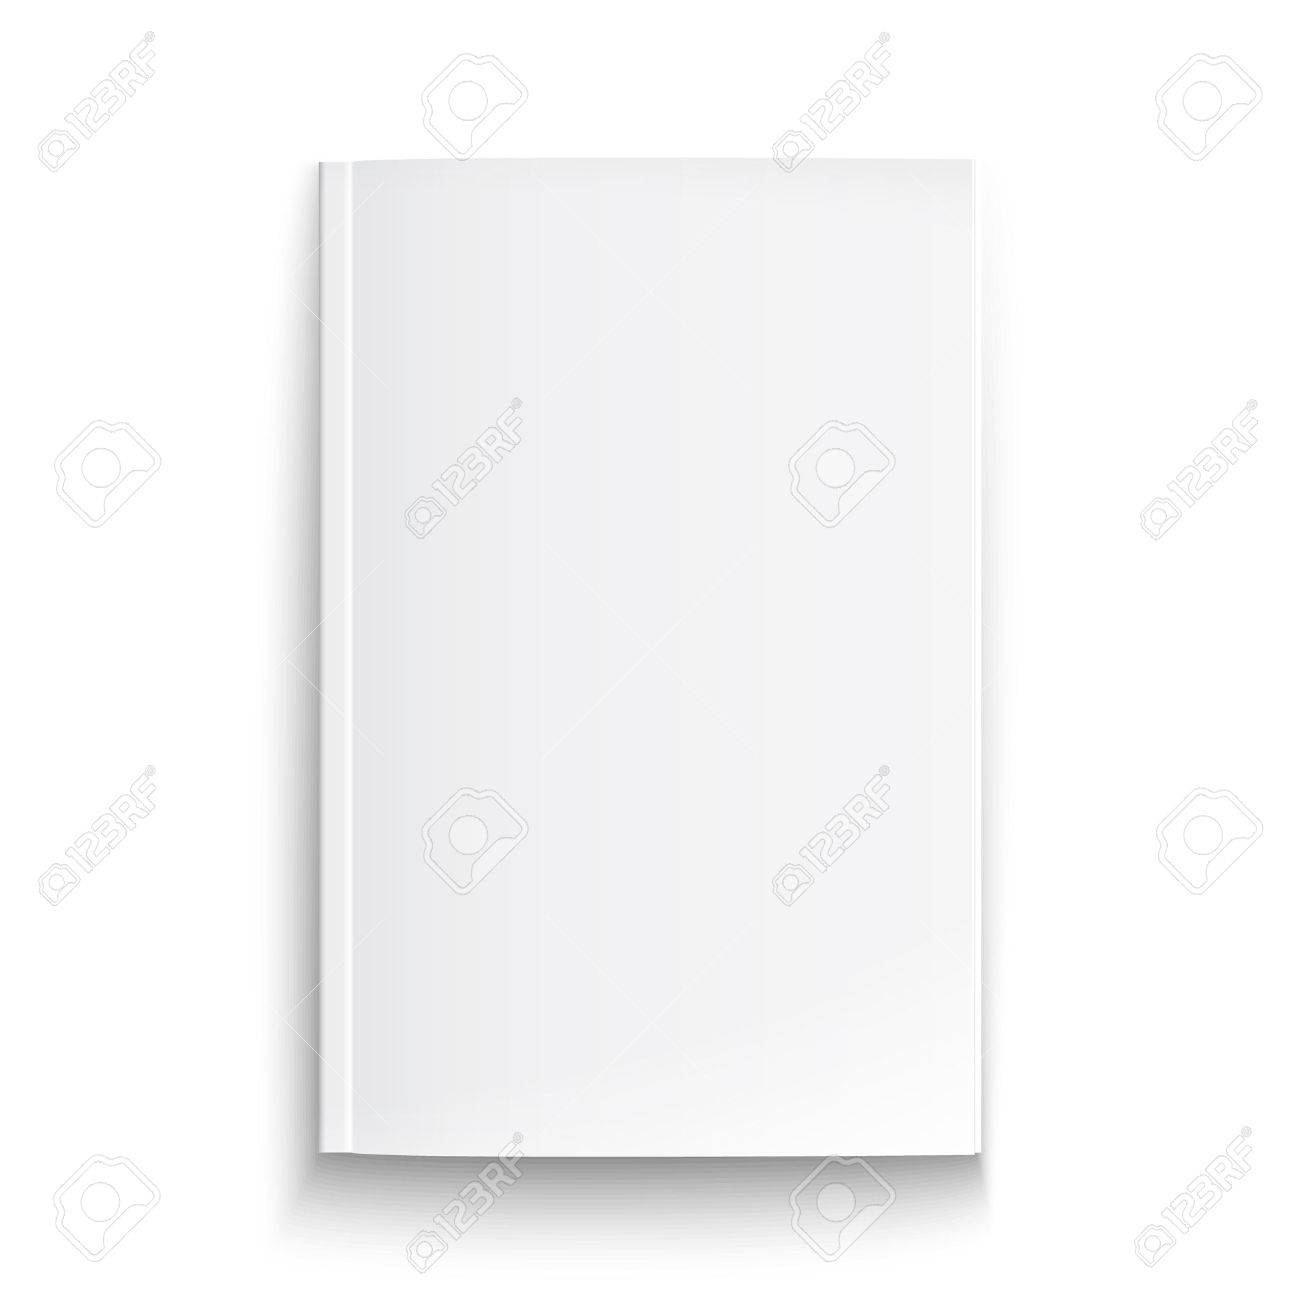 Blank magazine template on white background with soft shadows. Stock Vector - 23855256